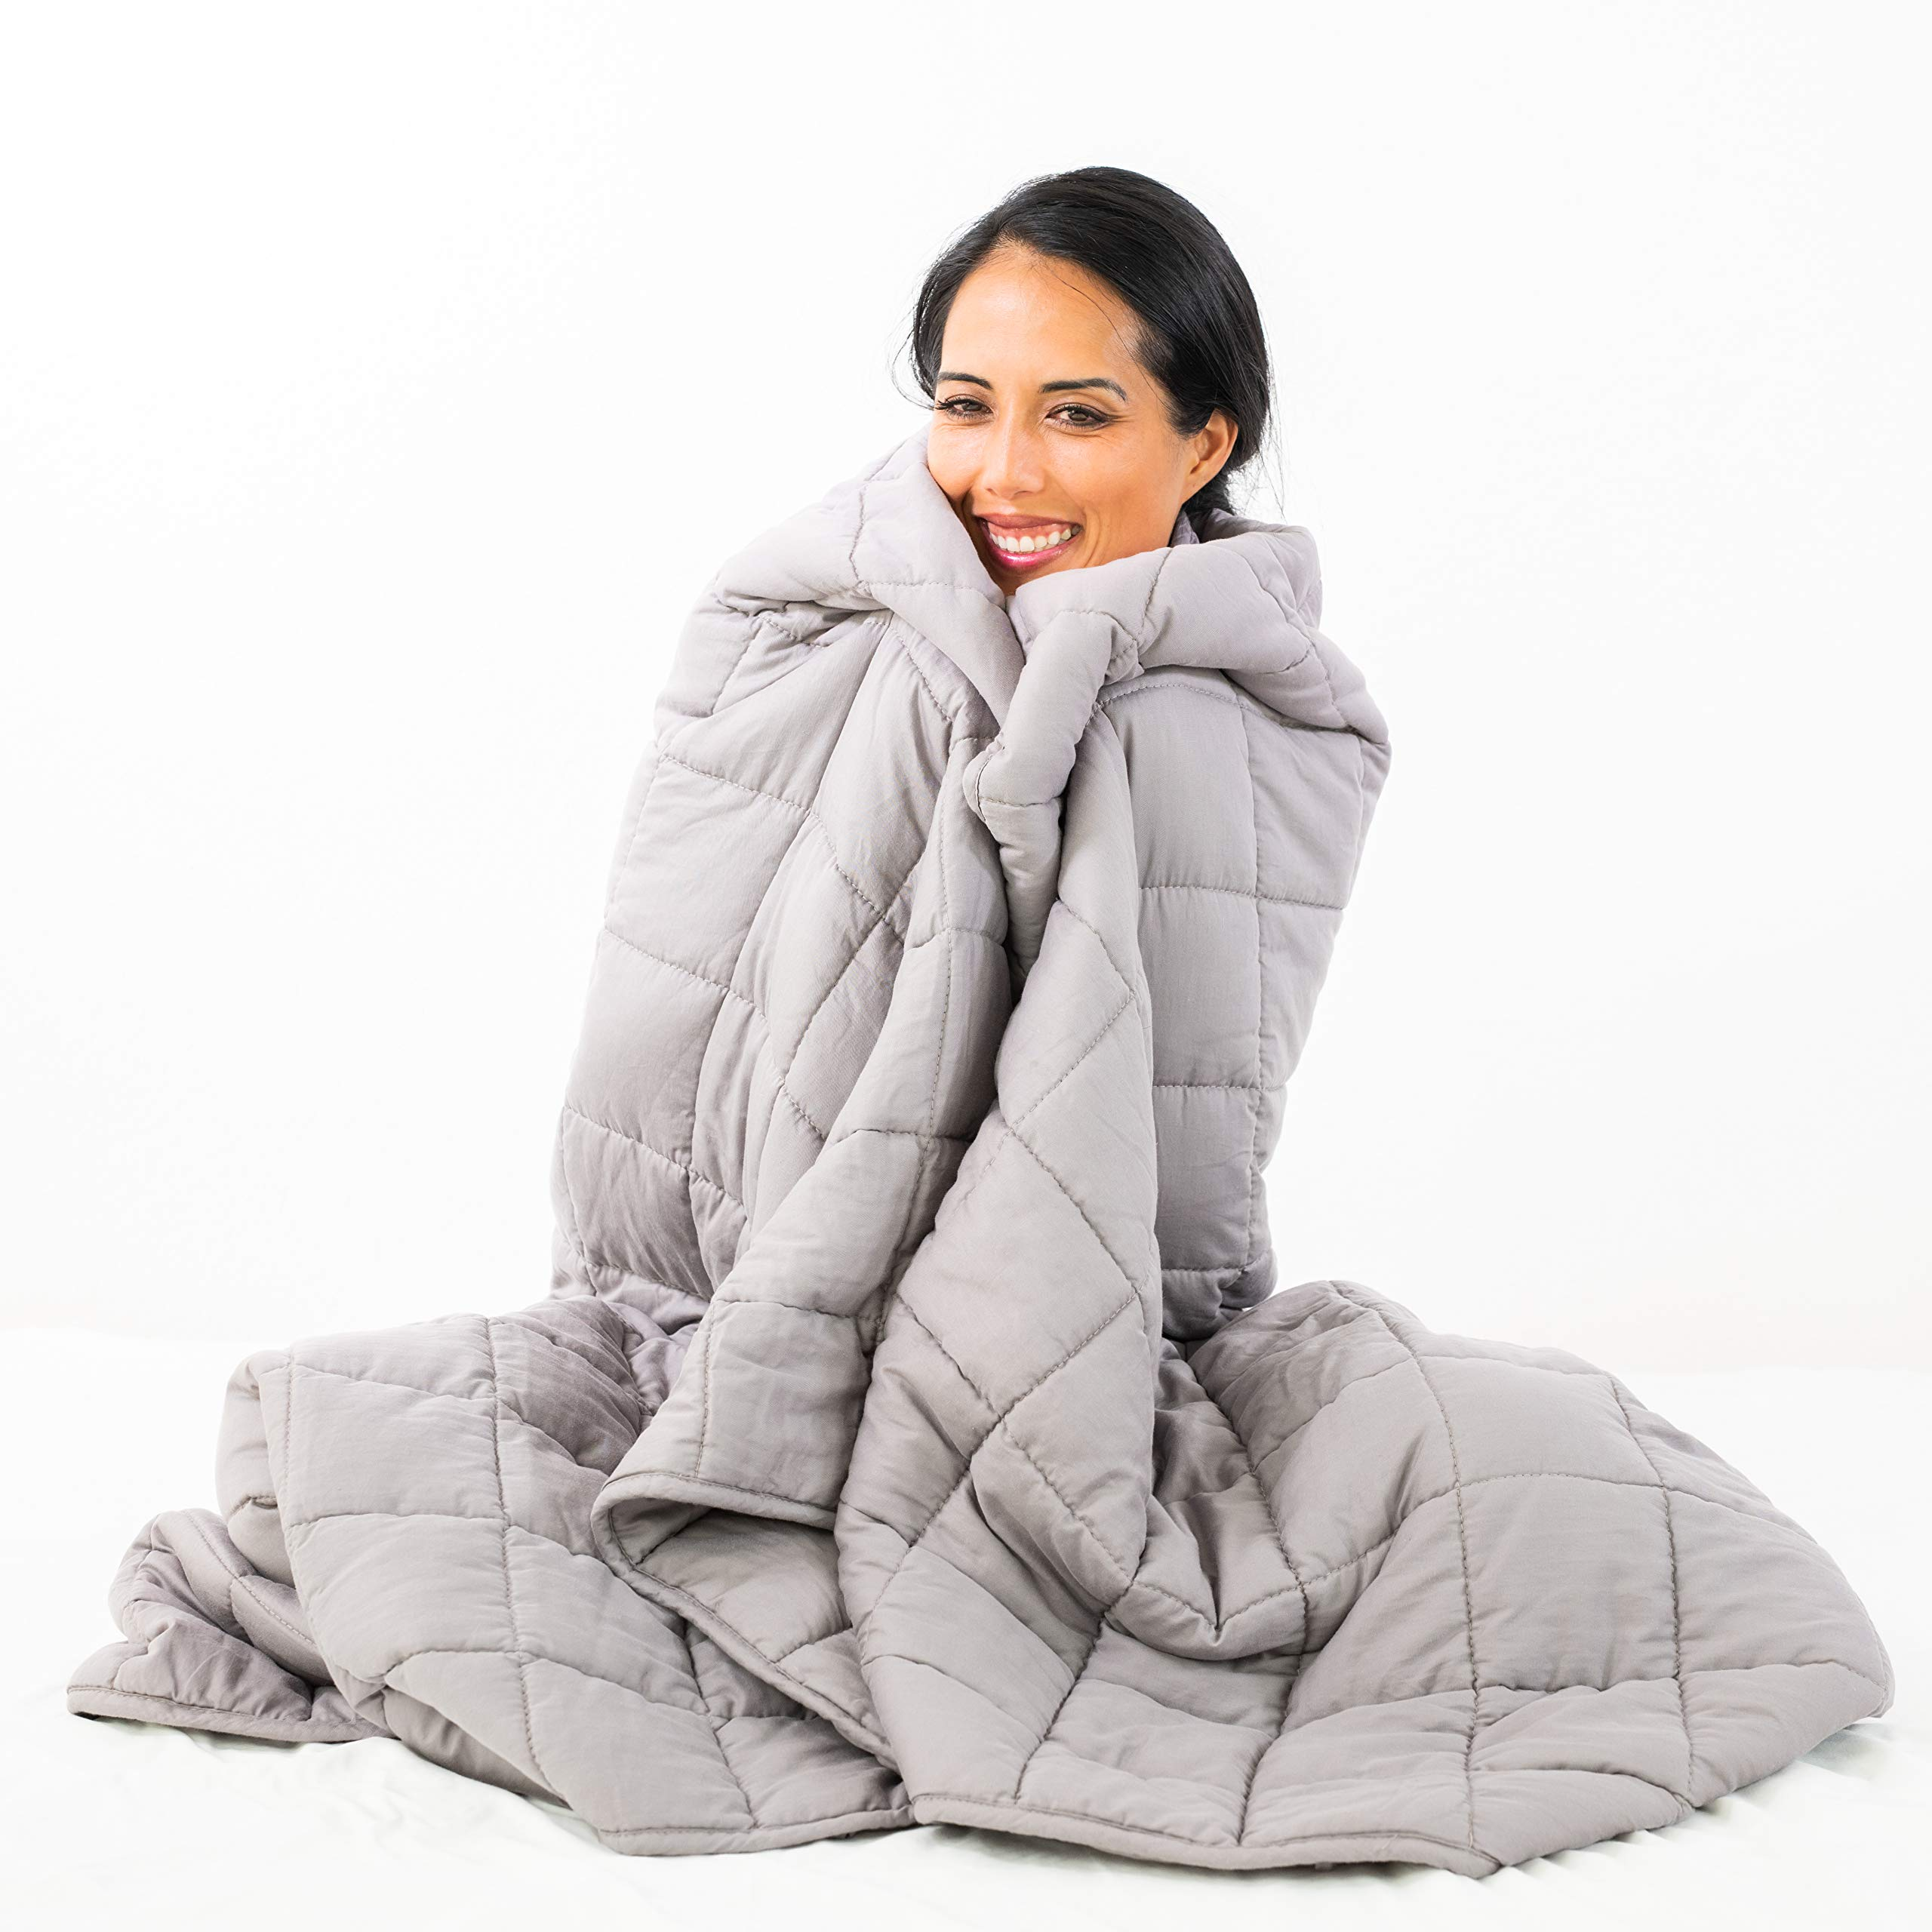 Nuzzie Weighted Blanket - Luxury Quality, Underpriced - Breathable 100% Comfortable Cotton - Even Weight Distribution - Durable Double Stitching (60''x80'' | 15lb, Space Grey)